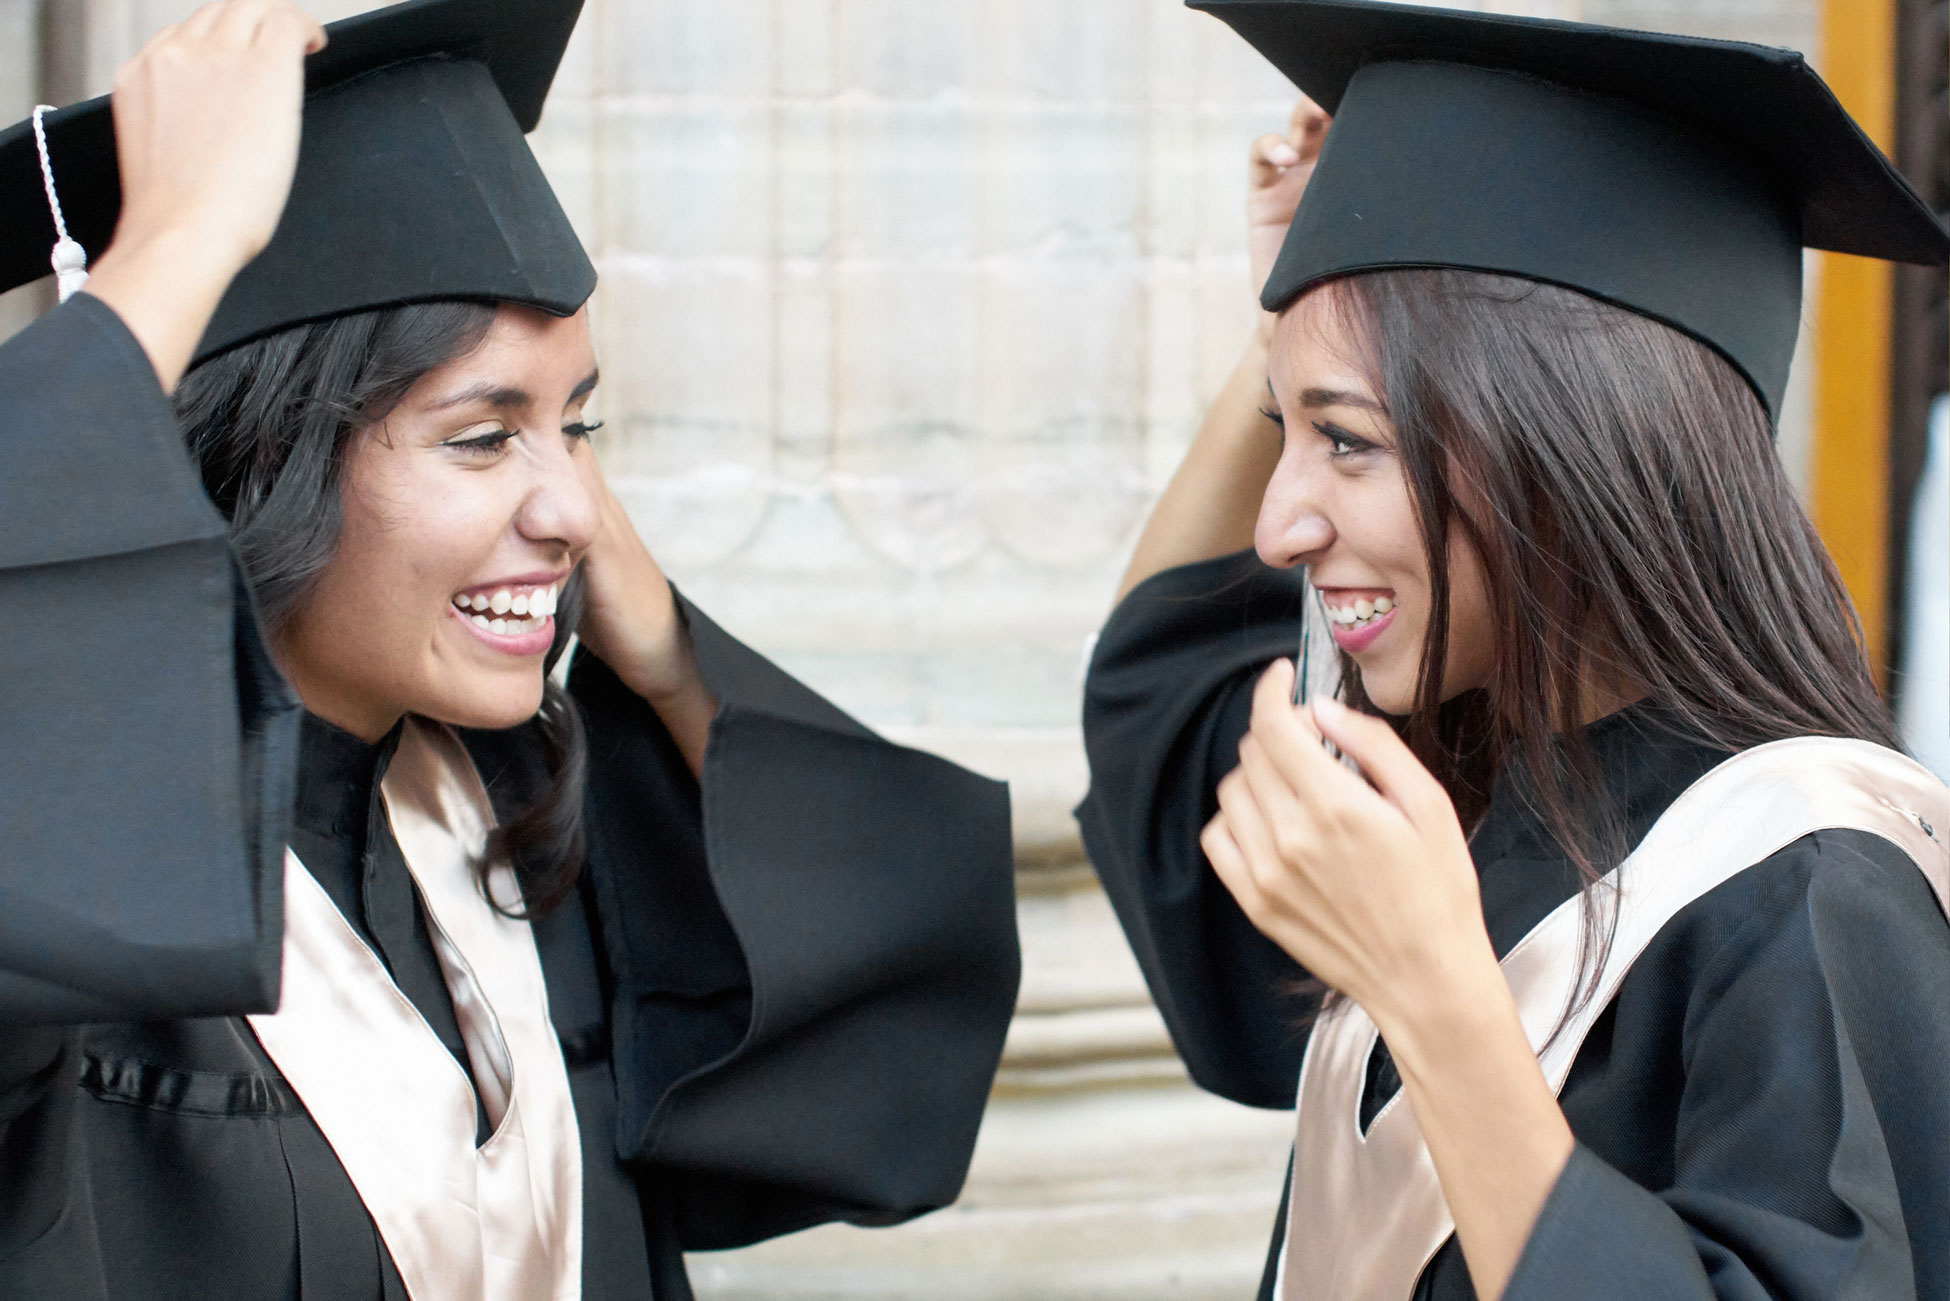 Two young women in graduation cap and gown